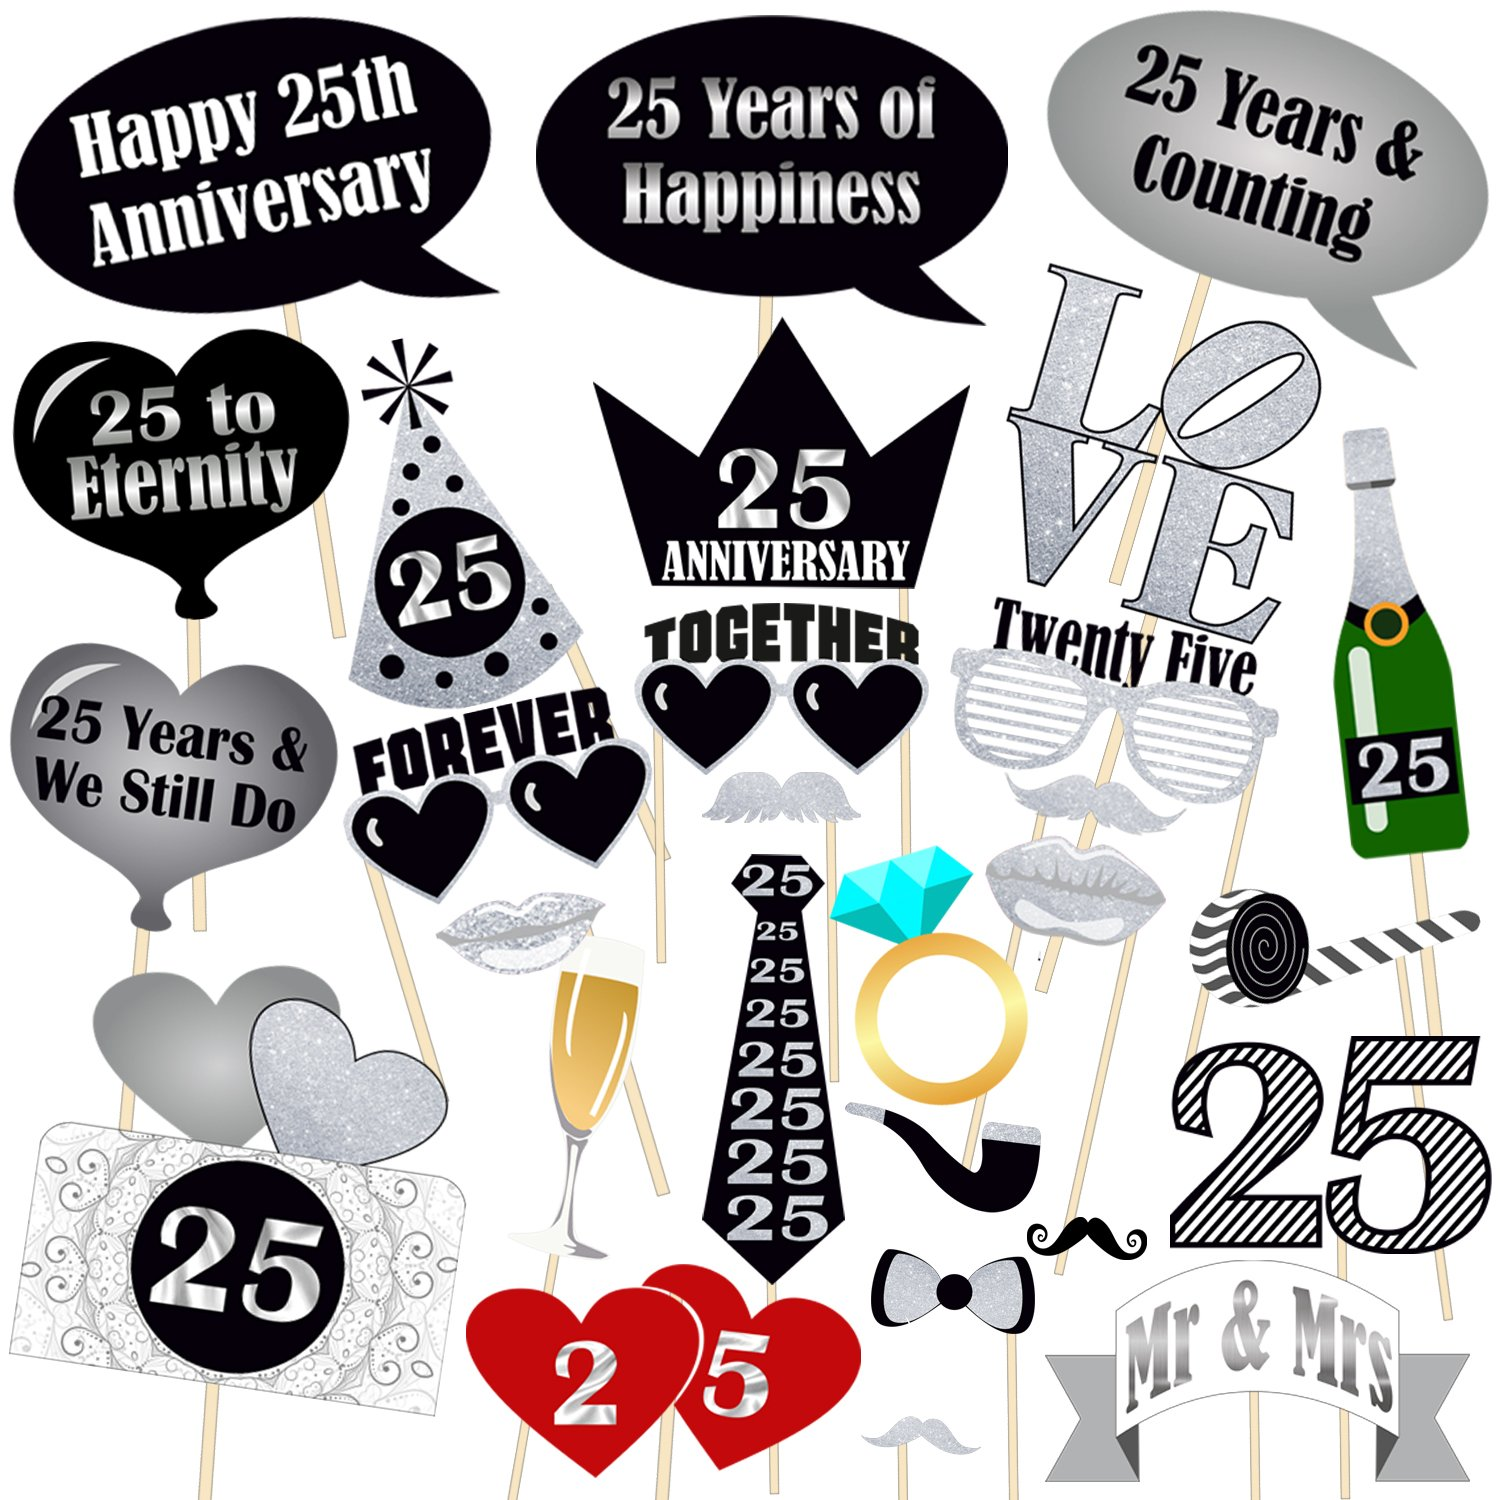 25Th Wedding Anniversary Decoration Ideas At Home from images-na.ssl-images-amazon.com